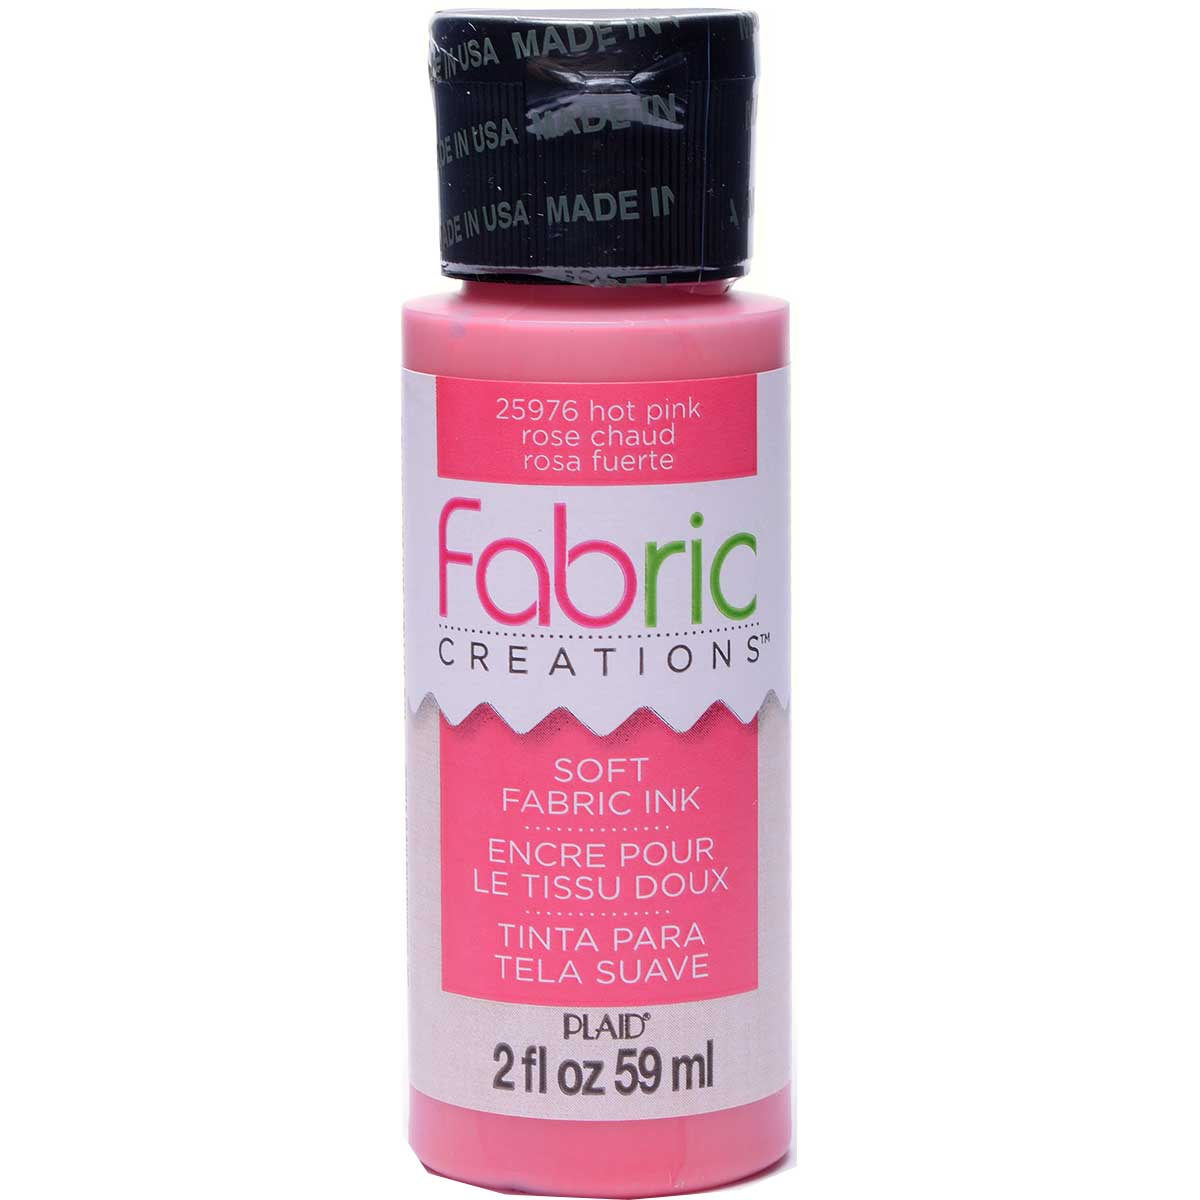 Fabric Creations™ Soft Fabric Inks - Hot Pink, 2 oz. - 25976